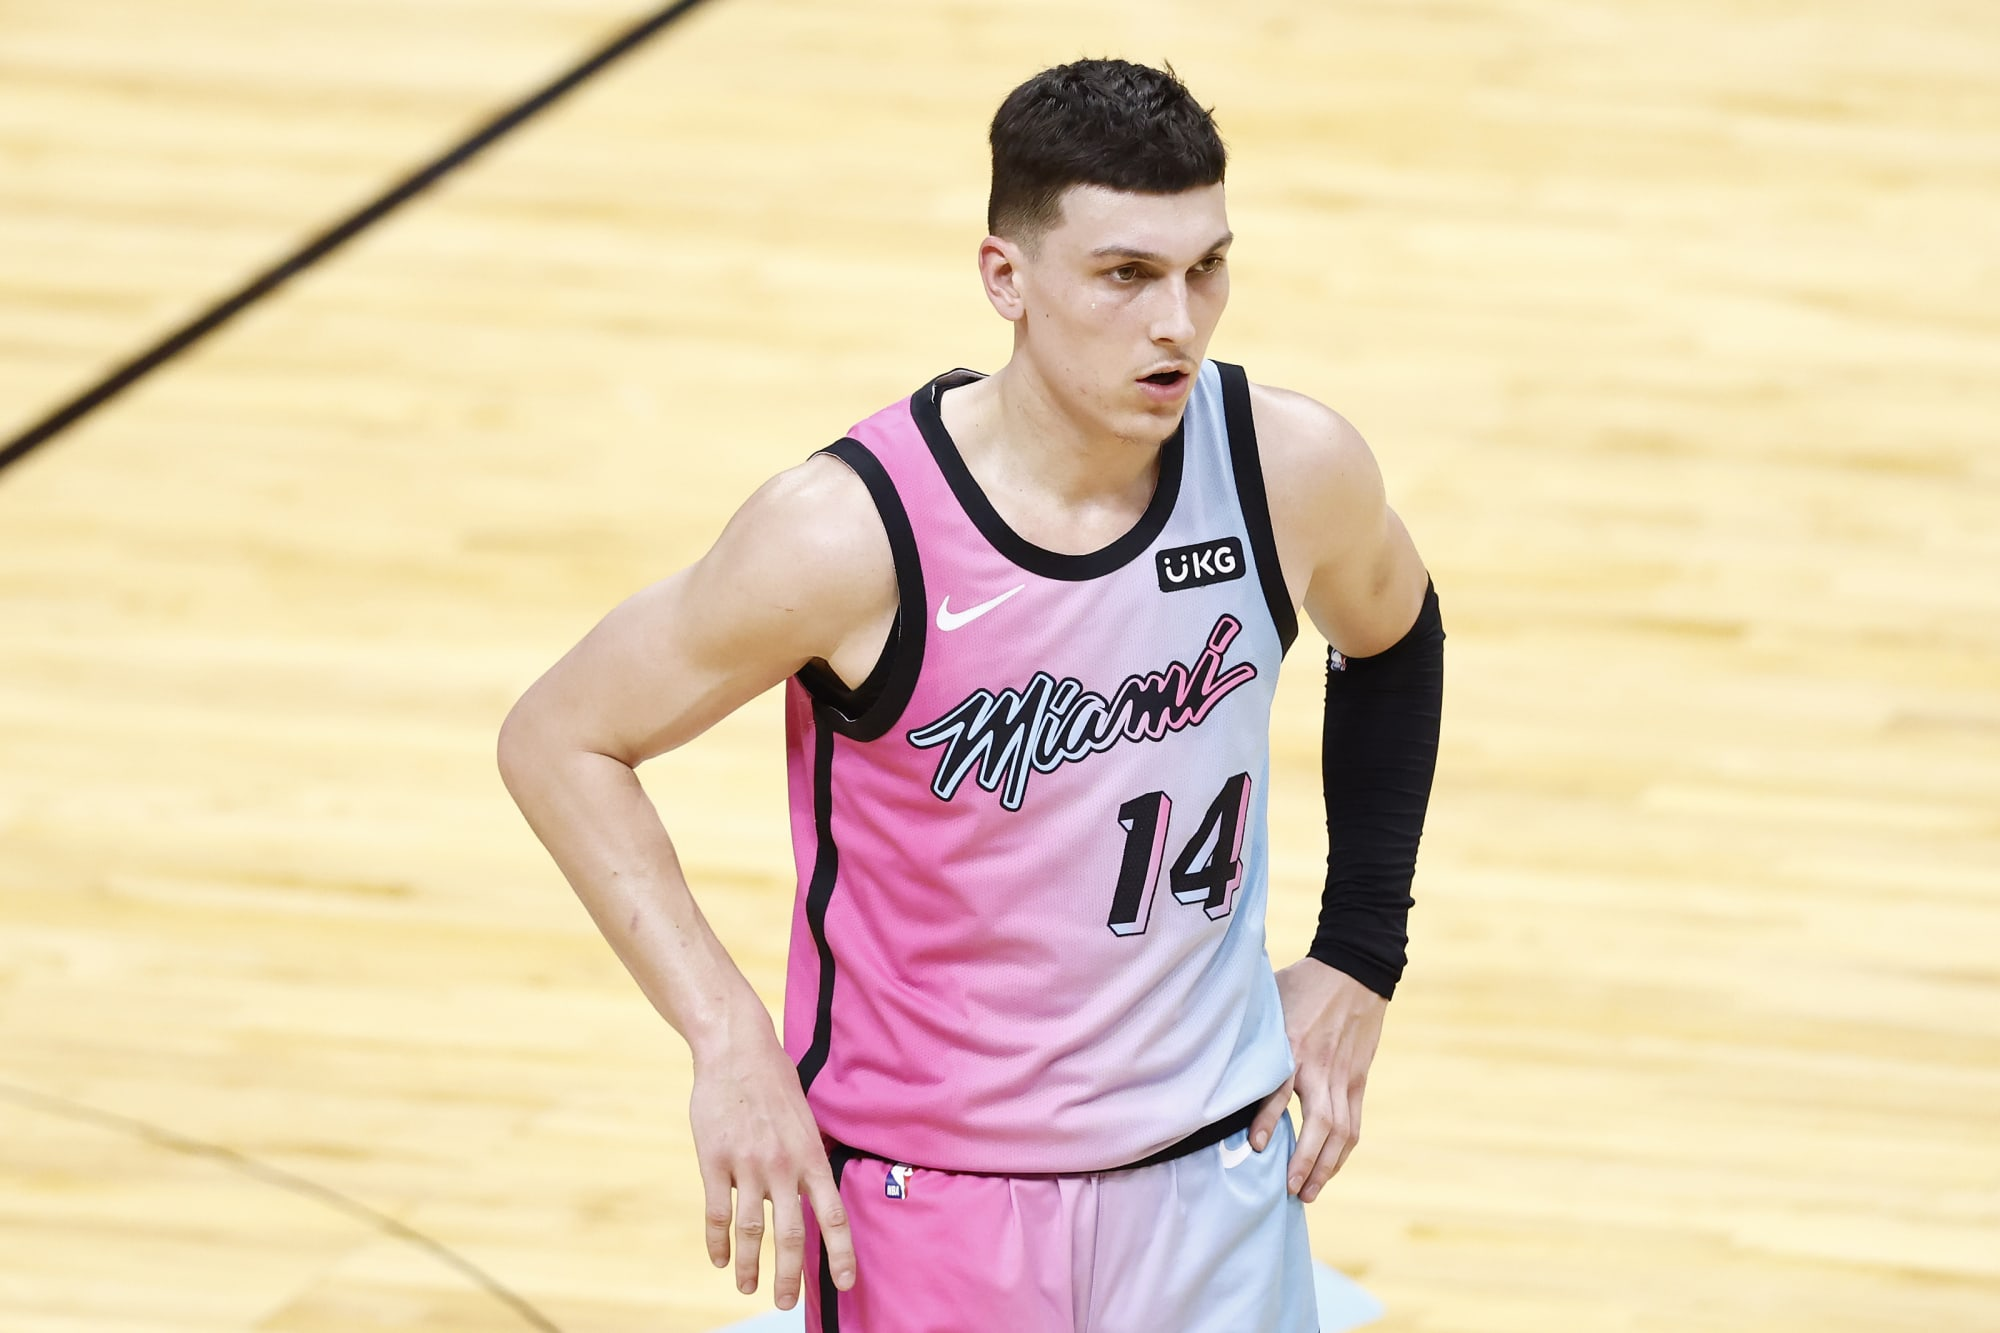 The Toronto Raptors dodged a bullet by not trading for Tyler Herro